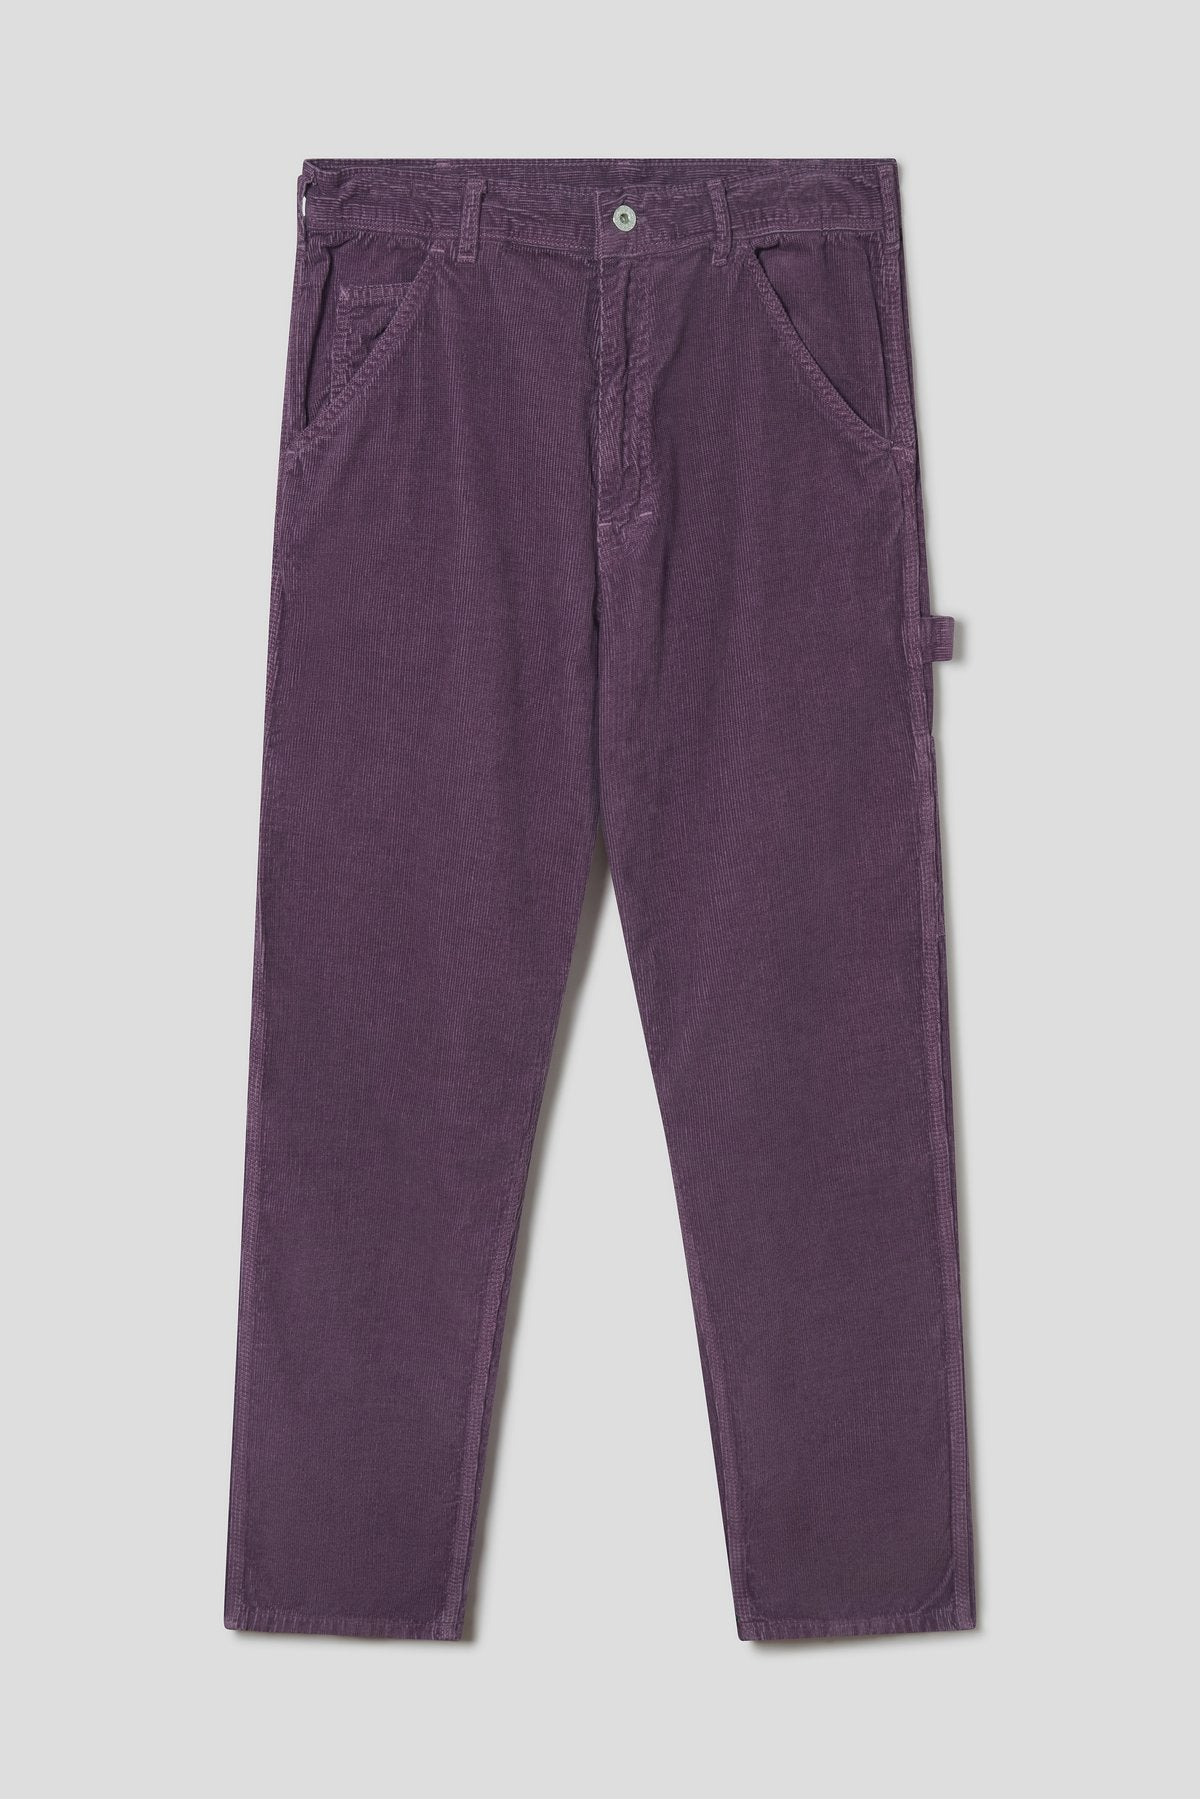 80's Painter Pant - Crushed Purple Cord